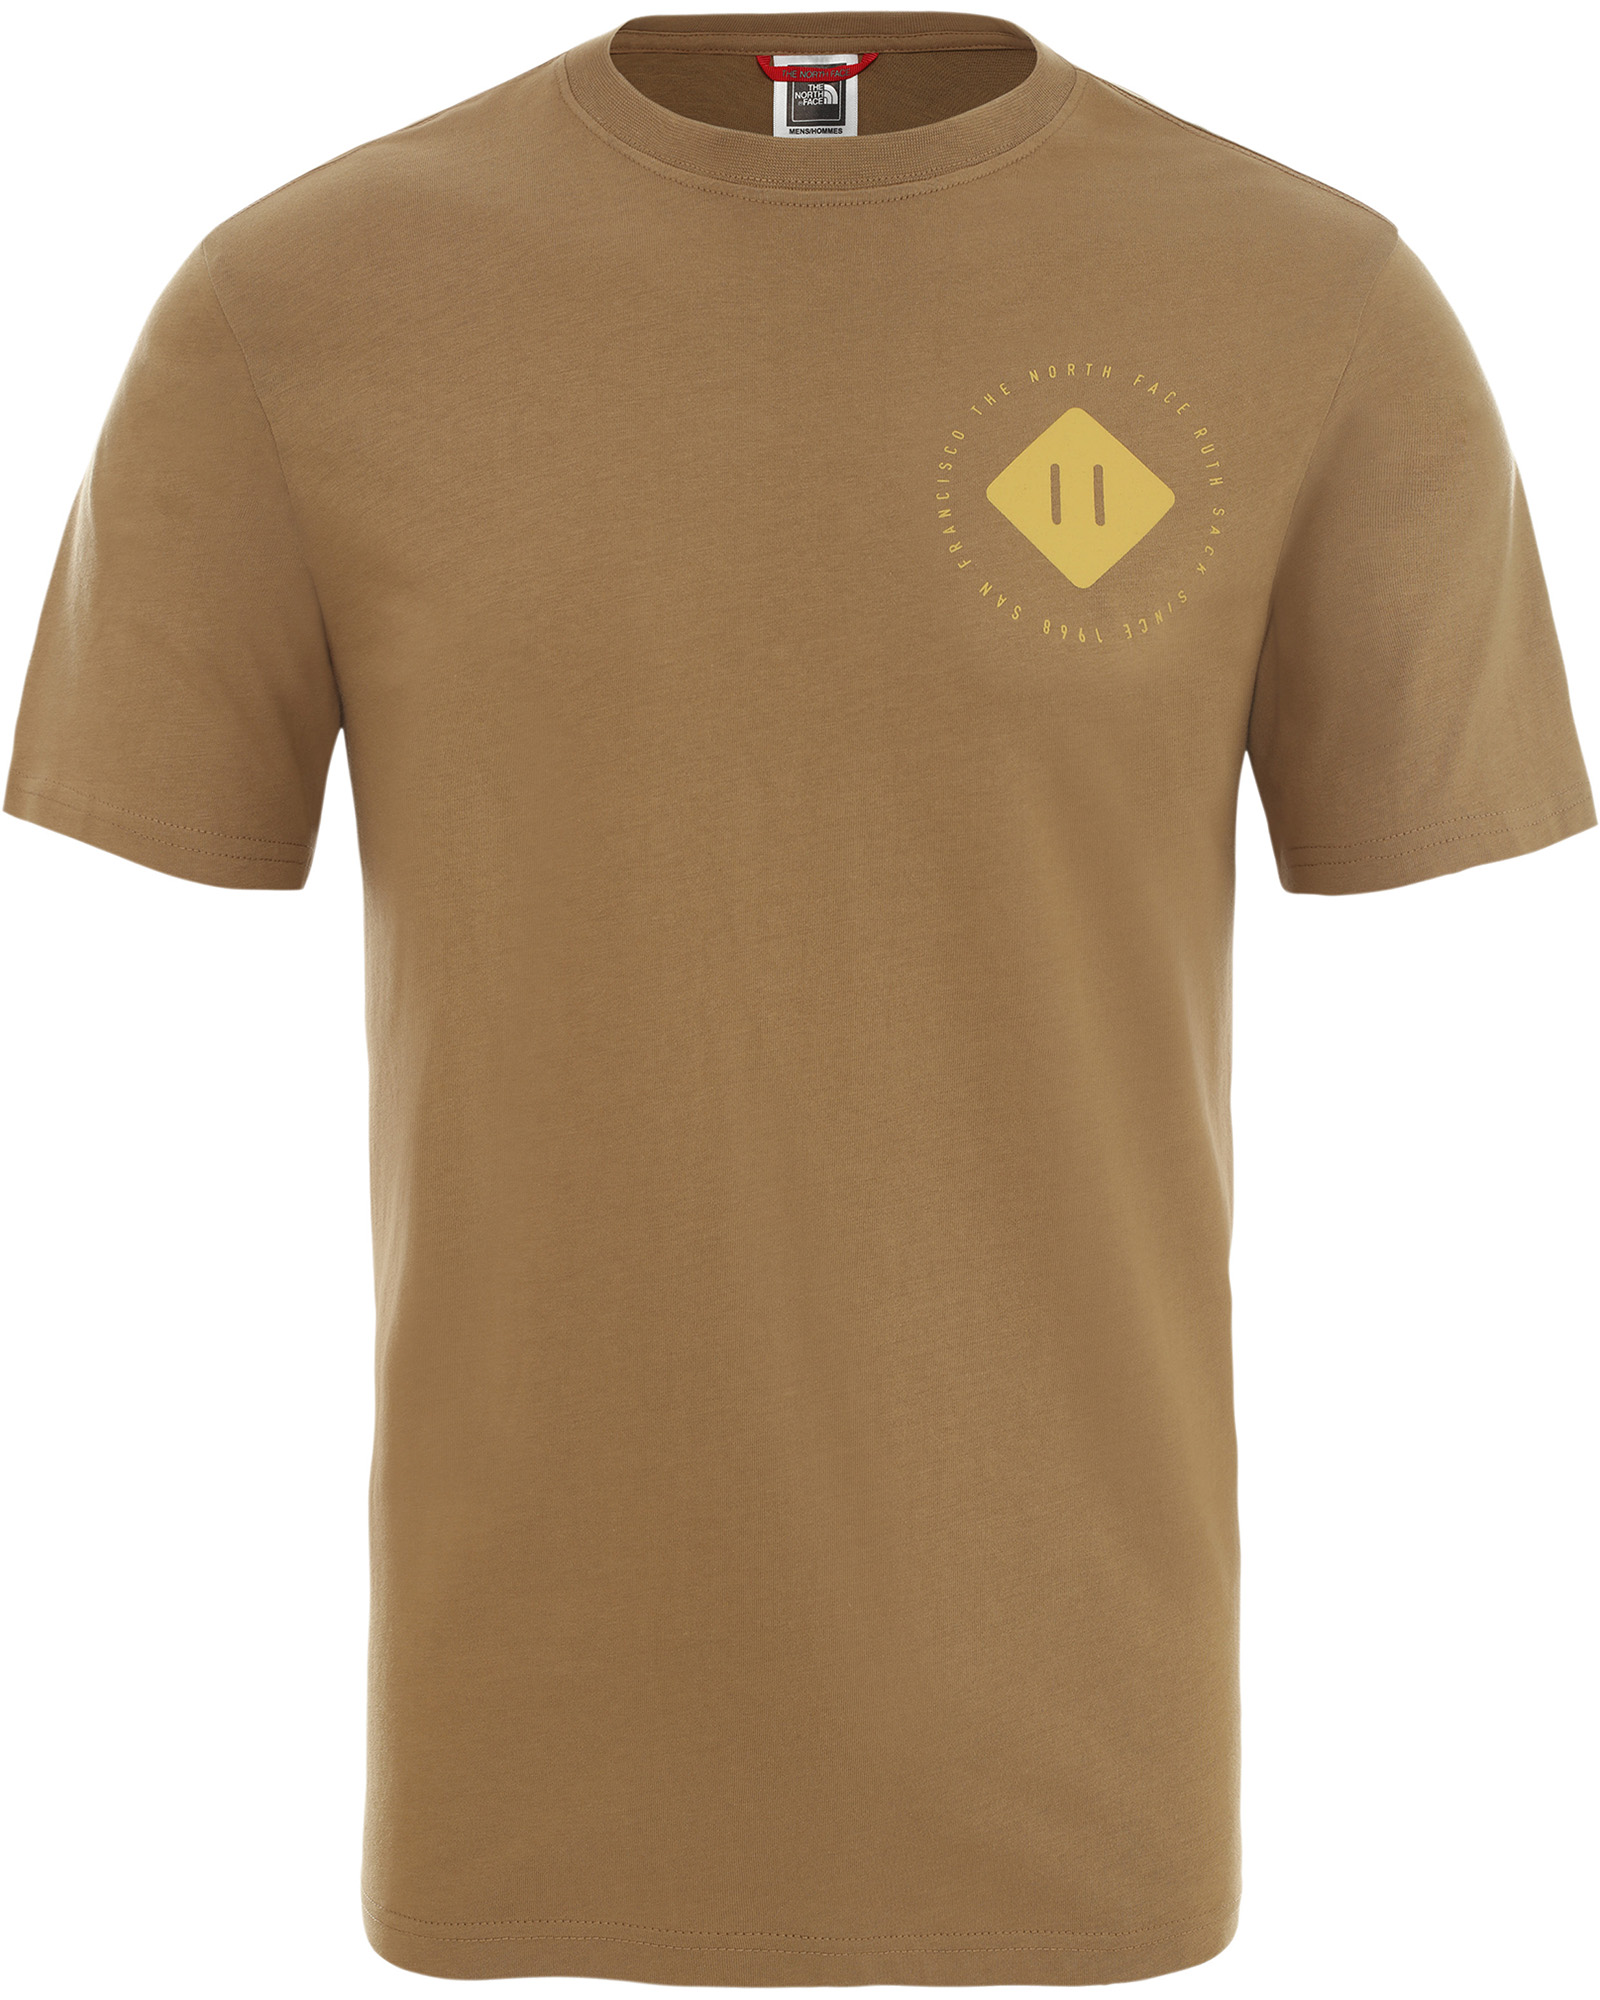 The North Face Men's Short Sleeve Graphic T-Shirt 0